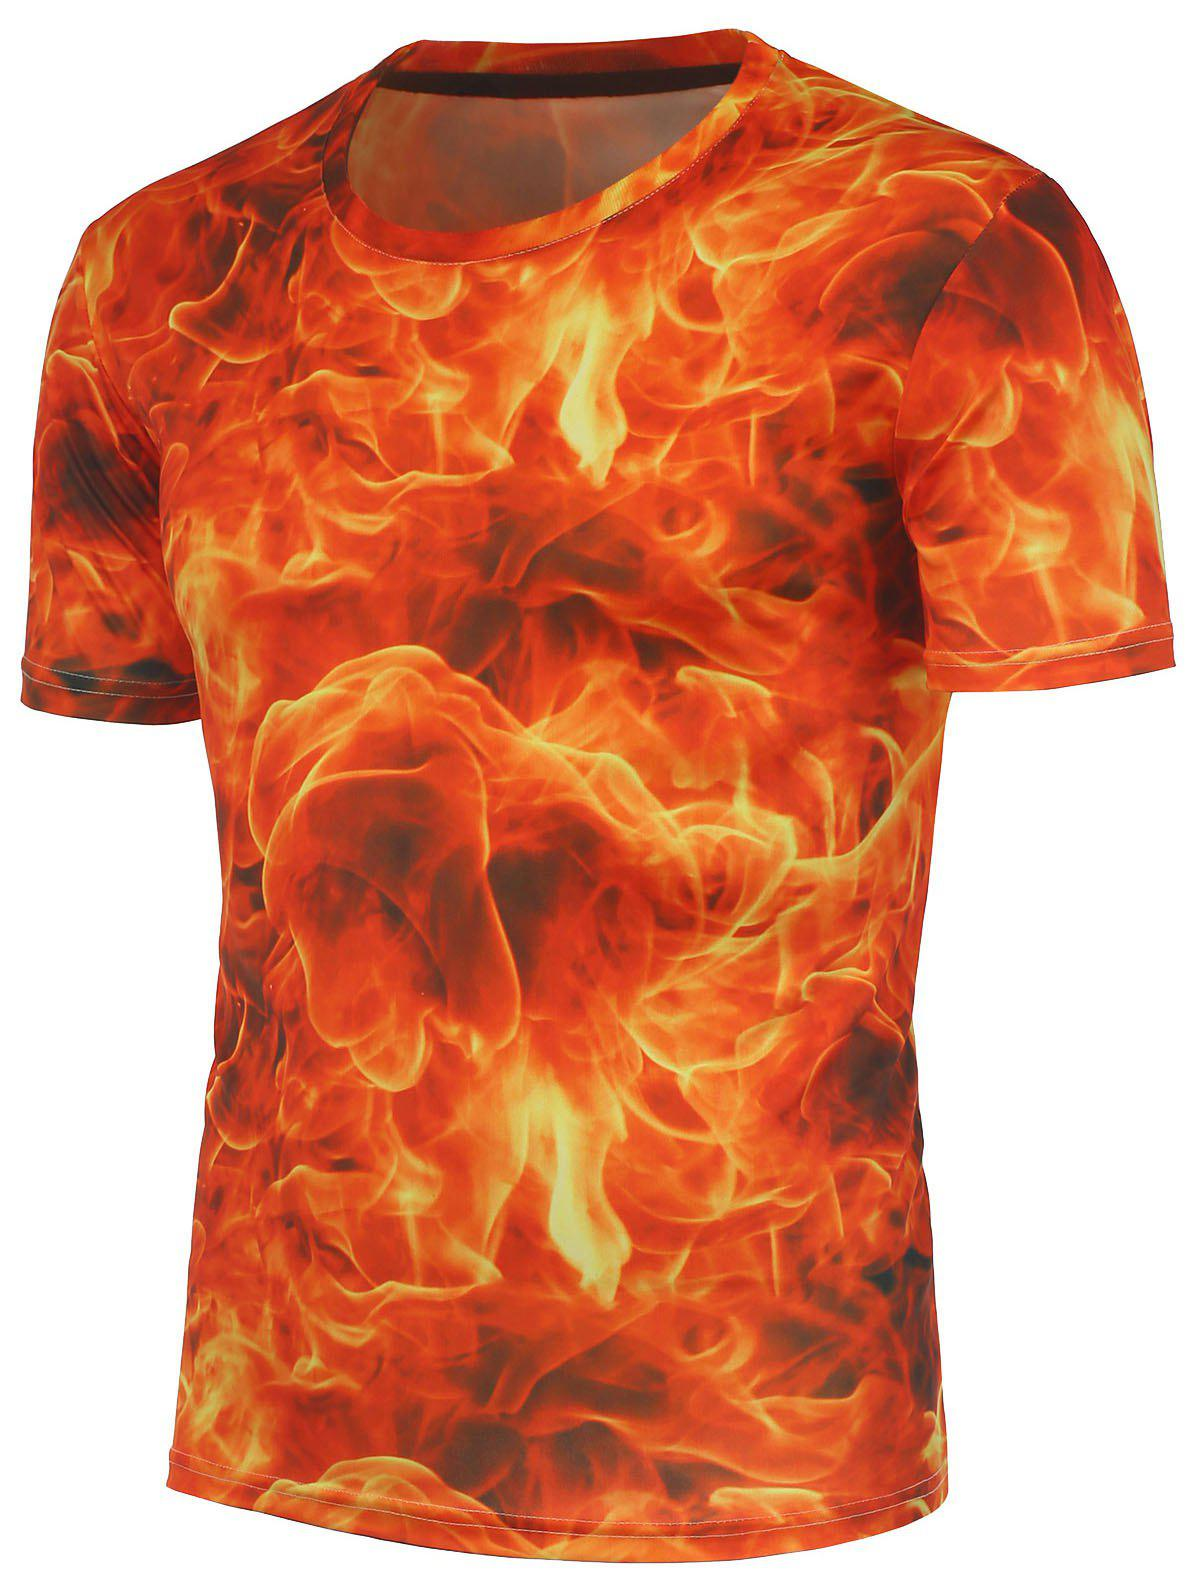 2017 3d fire printed crew neck t shirt red xl in t shirts for Custom fire t shirts